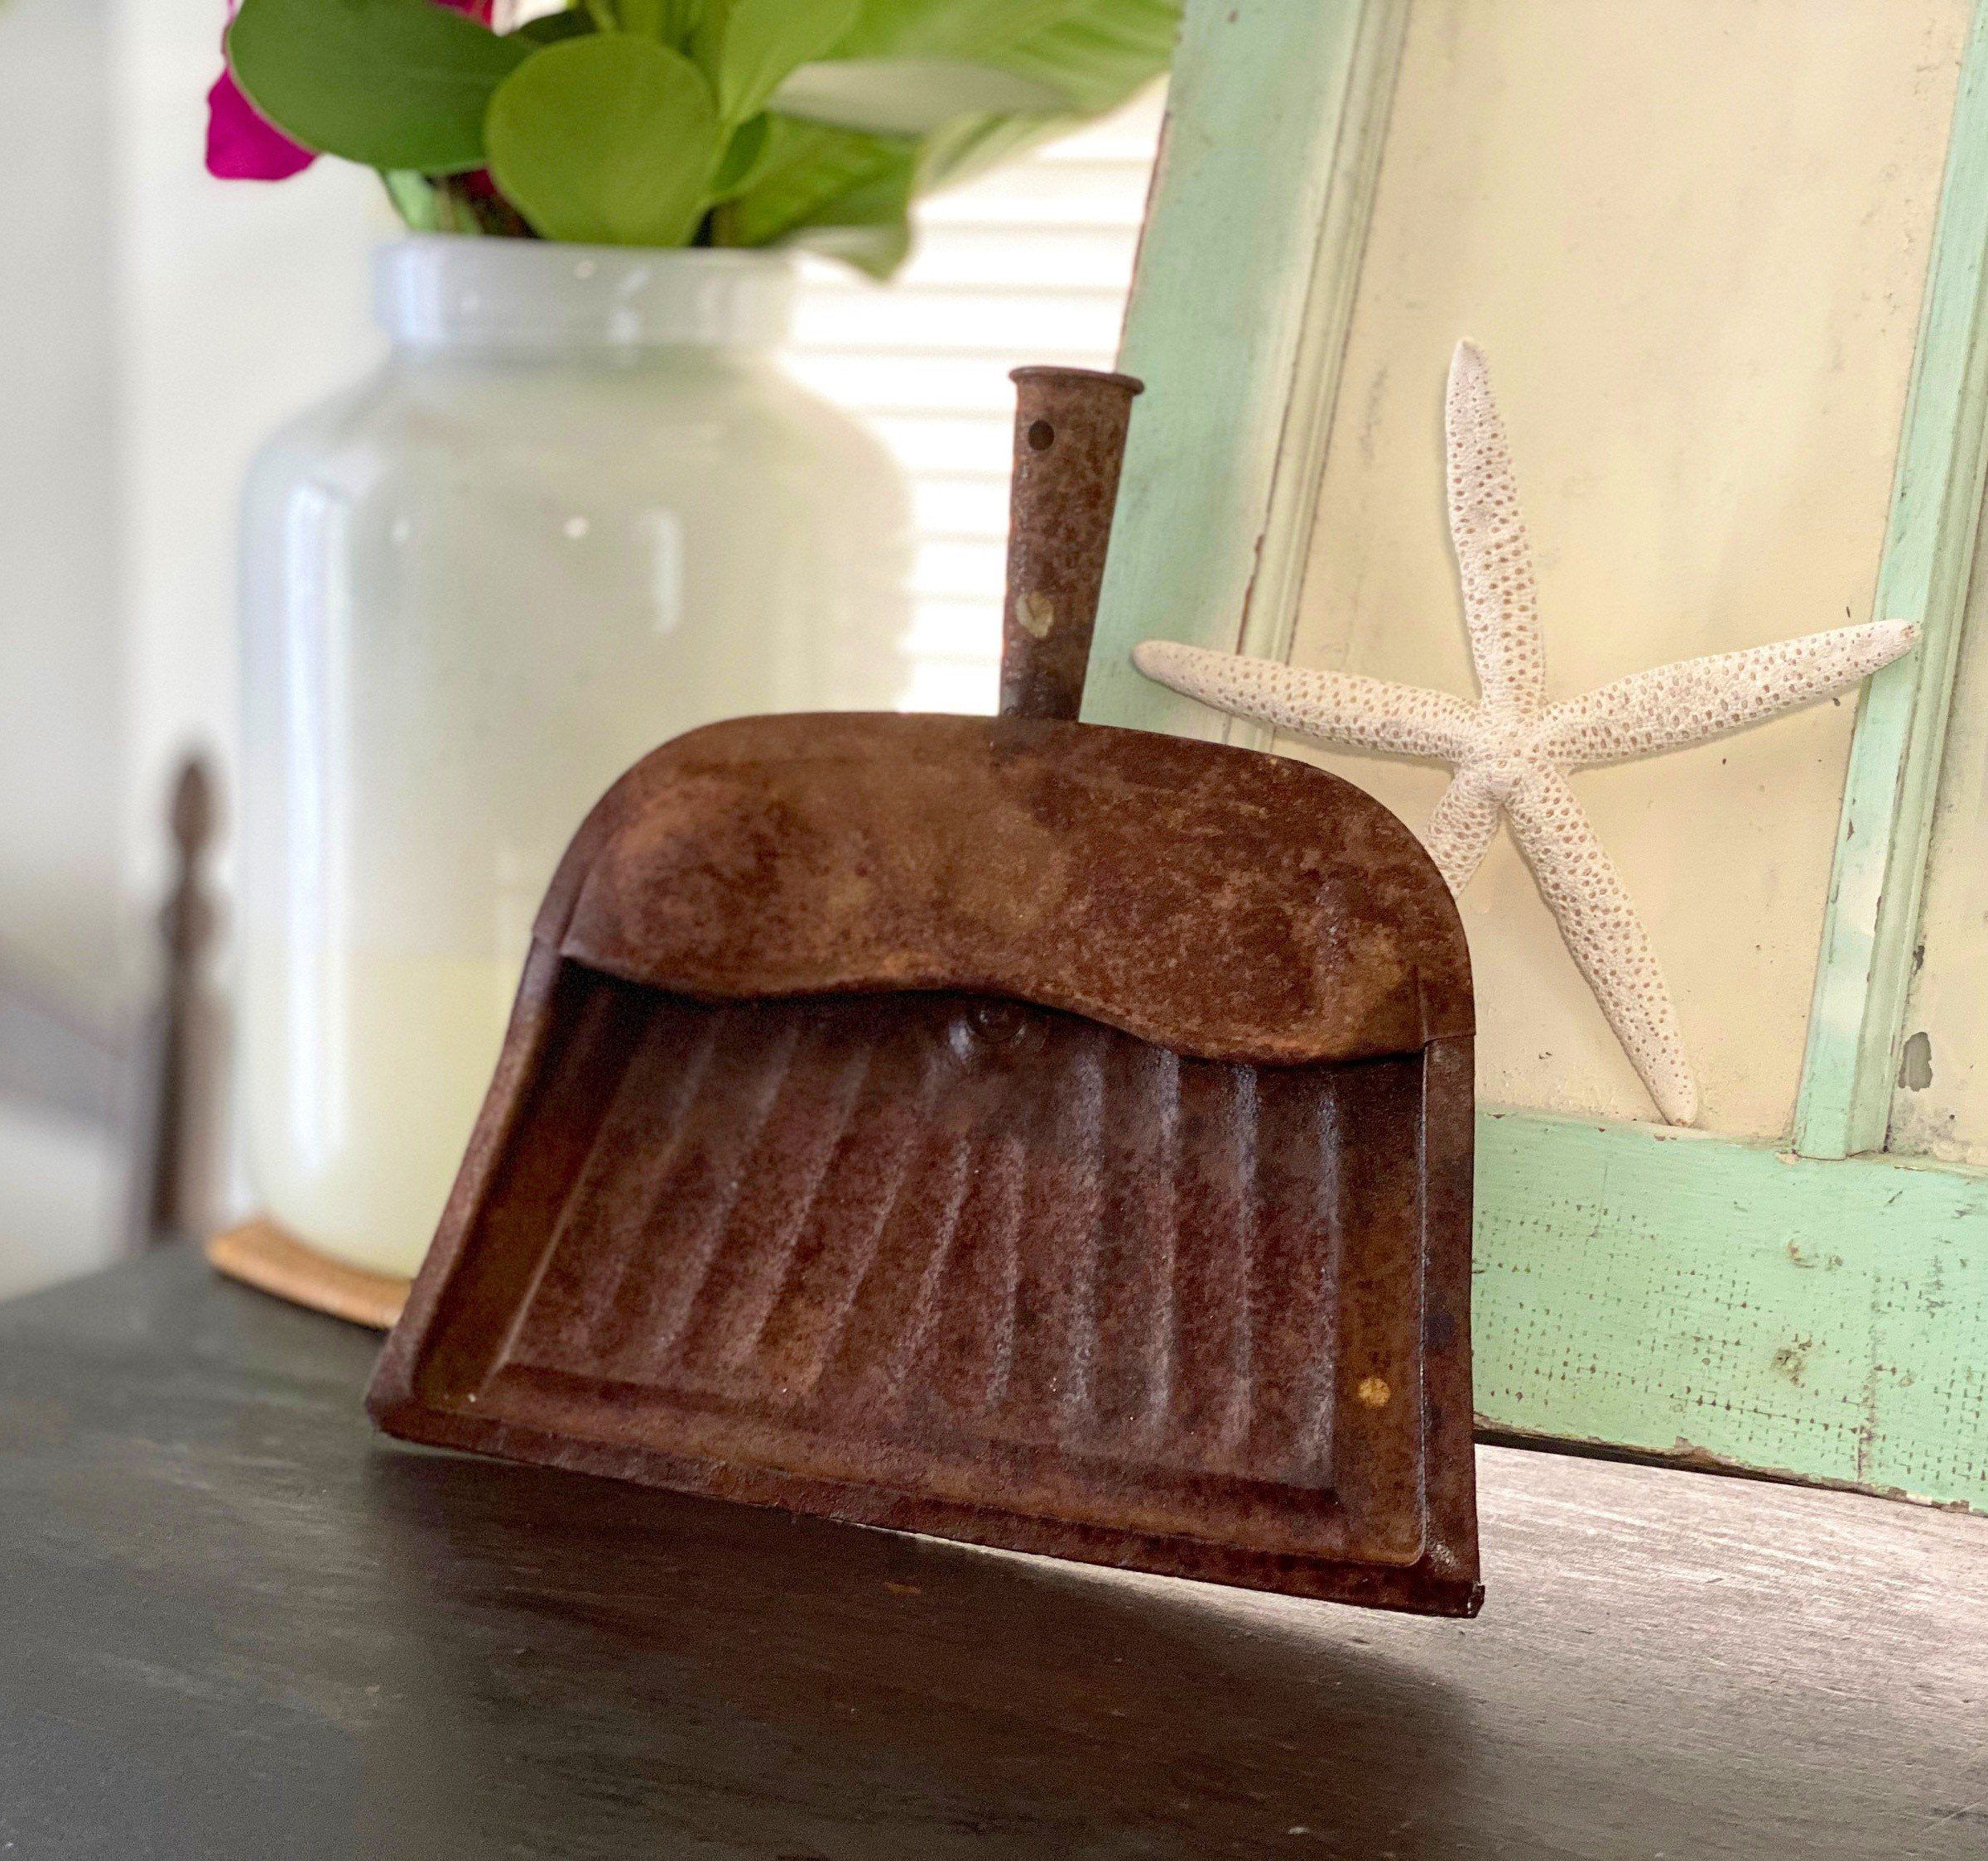 Excited to share this item from my #etsy shop: Vintage Dustpan, Vintage J V Reed Dustpan, Vintage Rustic Home Decor, Retro Home Decor, Southern Decor, Rustic Decor, Vintage Metal Dustpan #vintagehomedecor #rustichomedecor #southernhomedecor #countryhomedecor #reeddustpan #vintagedustpan #vintagecleaning #cleaningsupplies #rustichome